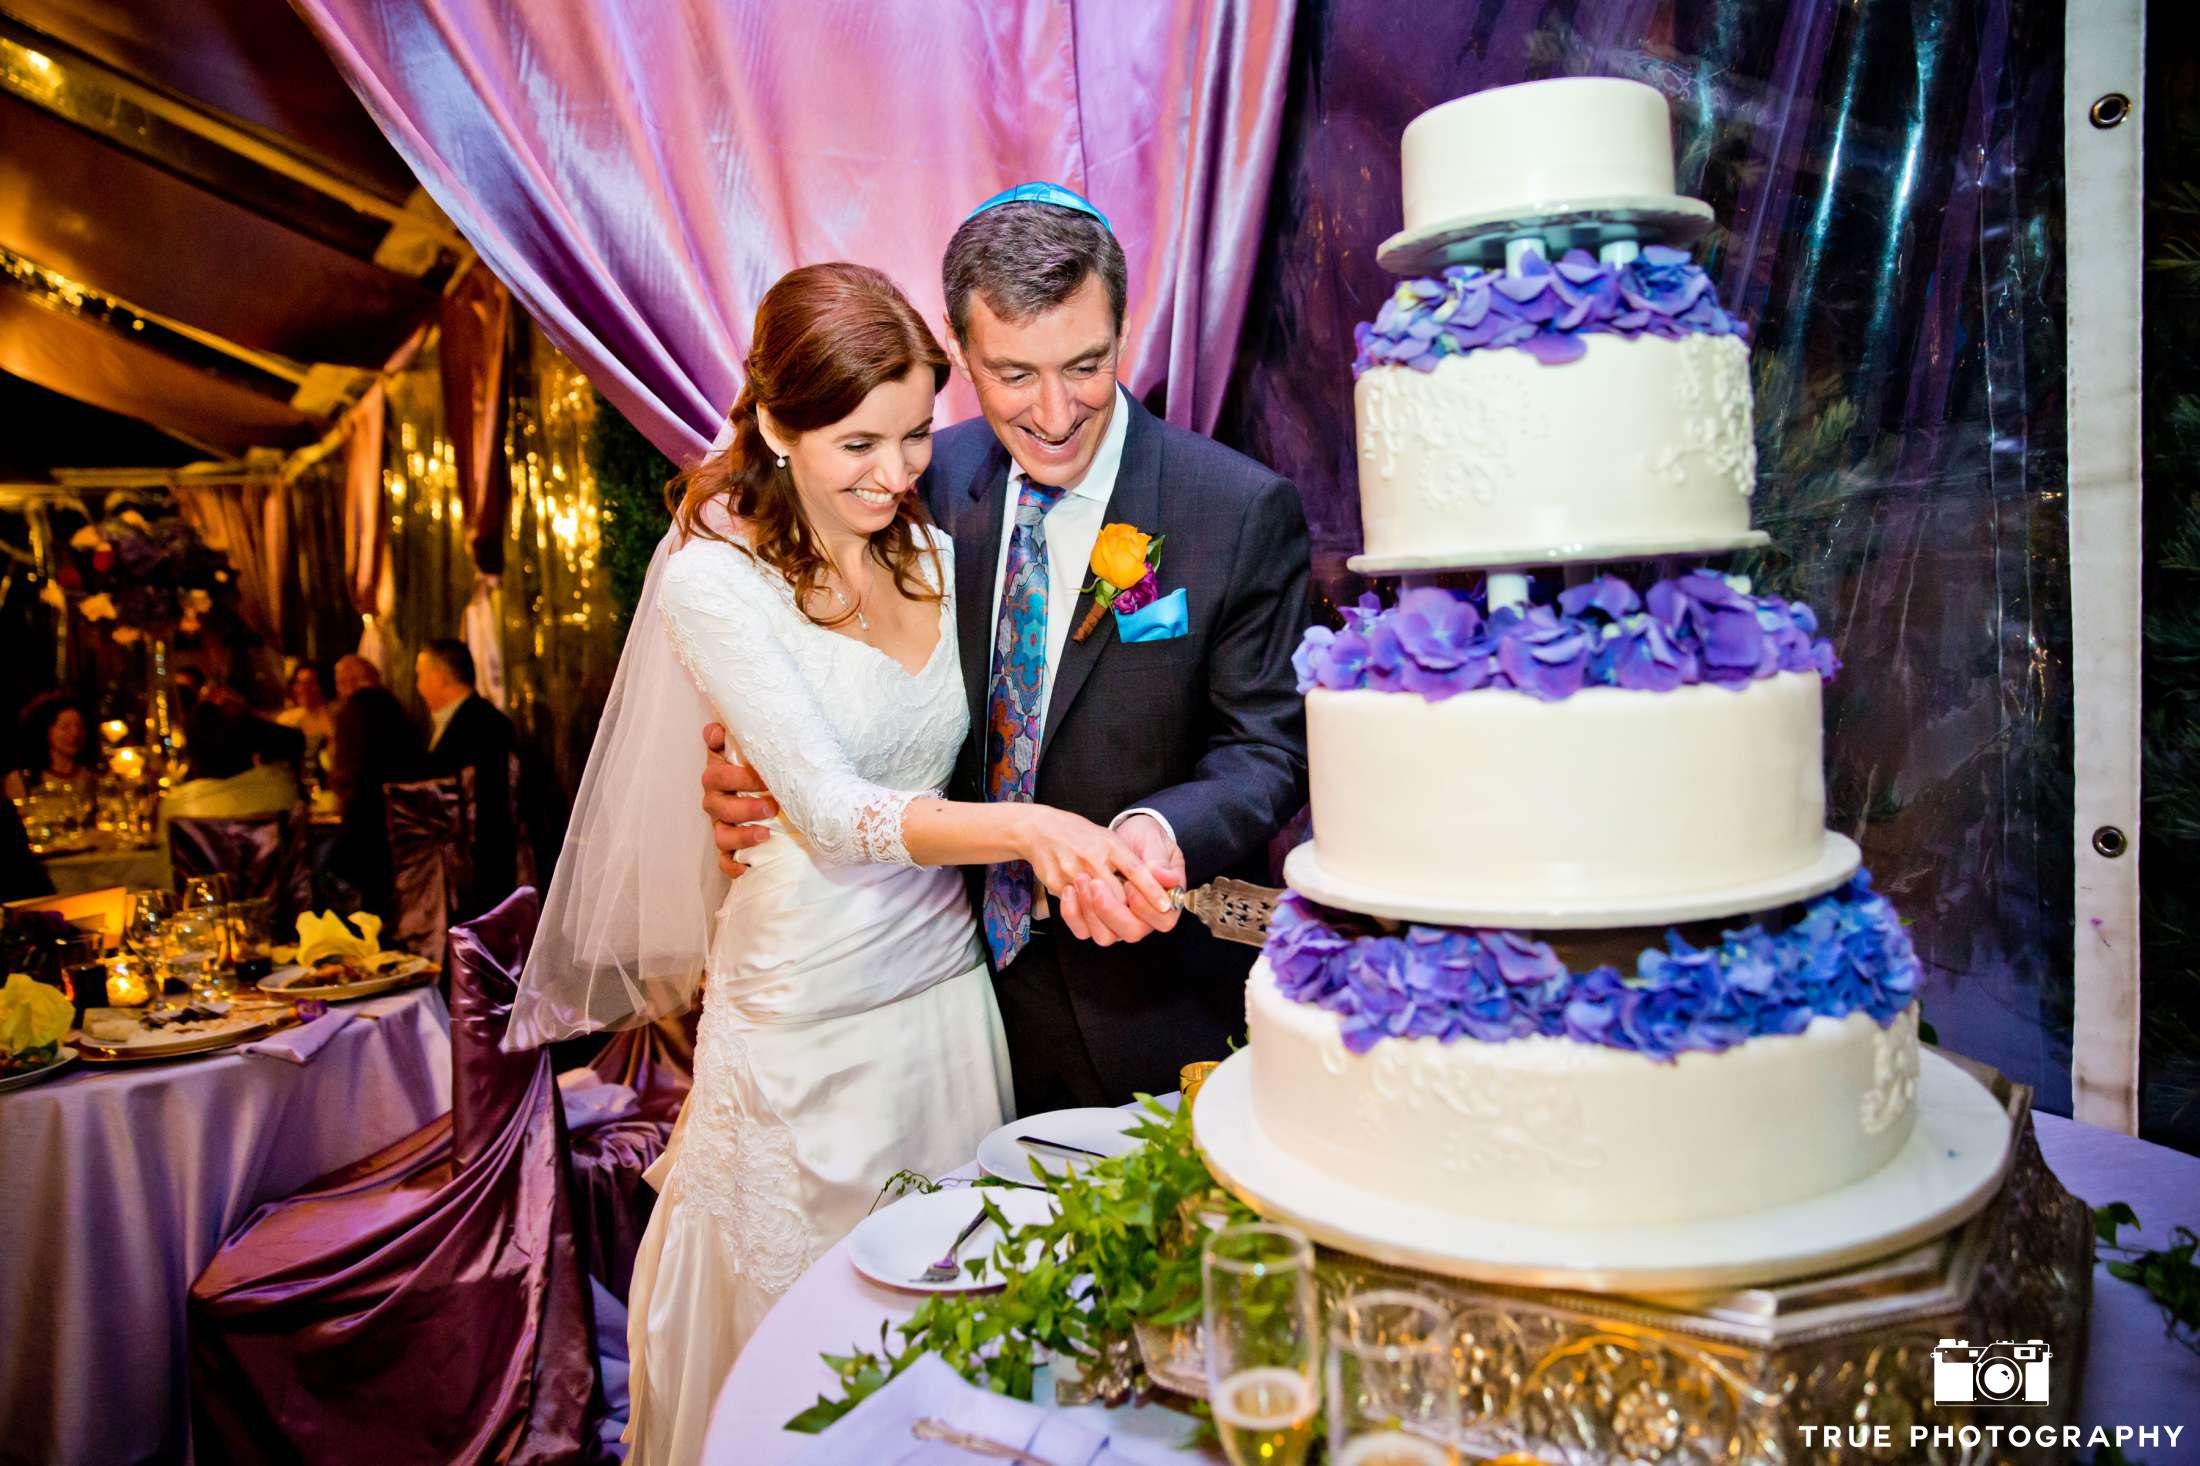 A great song playing in the background during cake cutting is the key aspect in setting the mood.